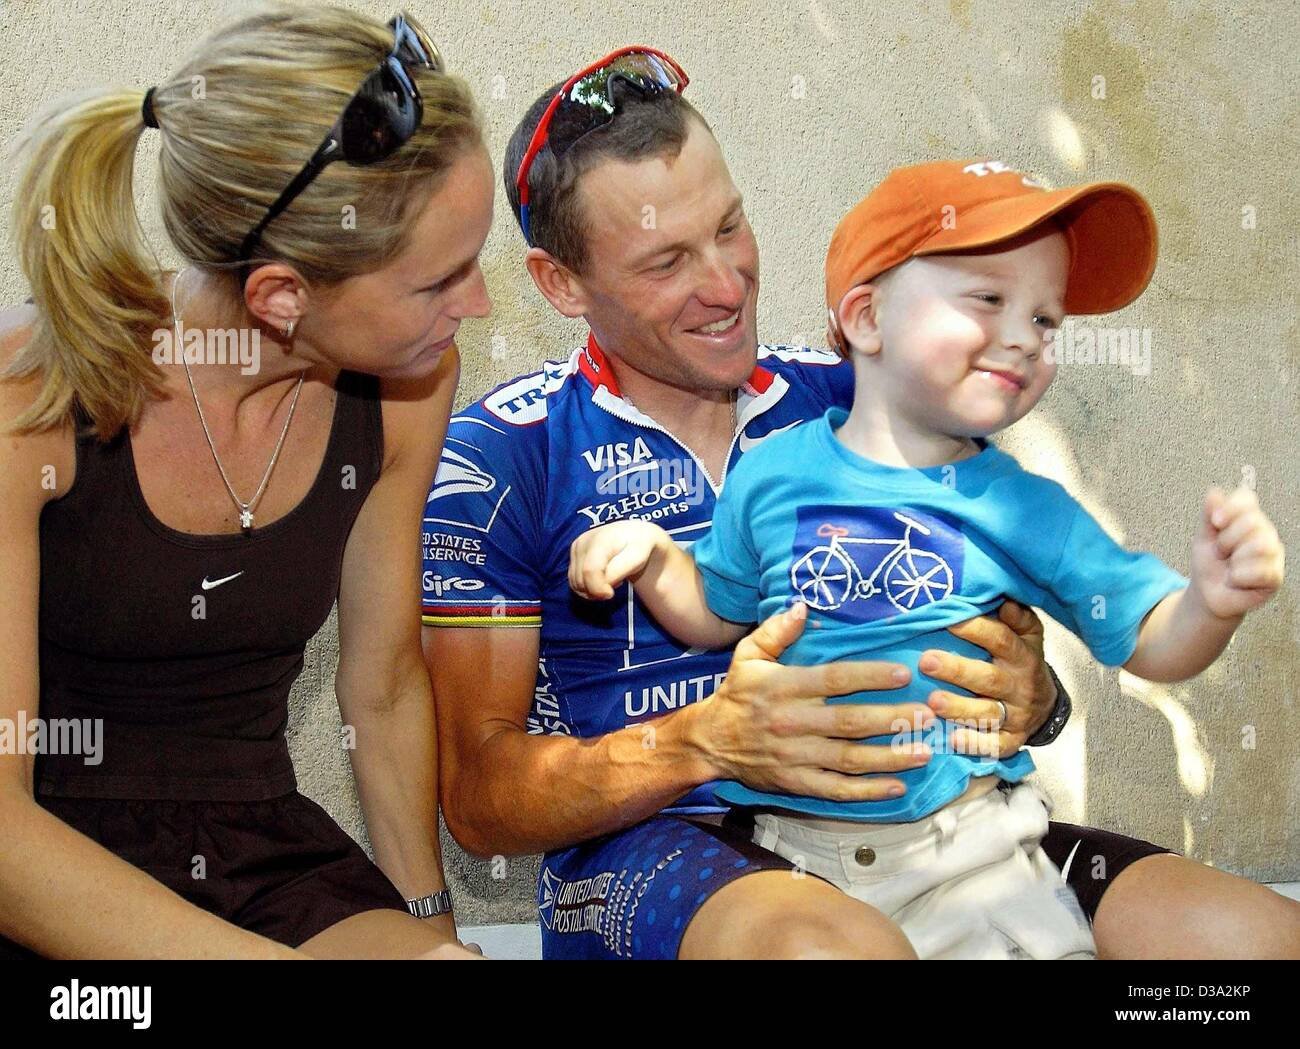 (dpa) - US Lance Armstrong jokes with his son Luke who is sitting on his lap while his wife Kristin looks on before - Stock Image